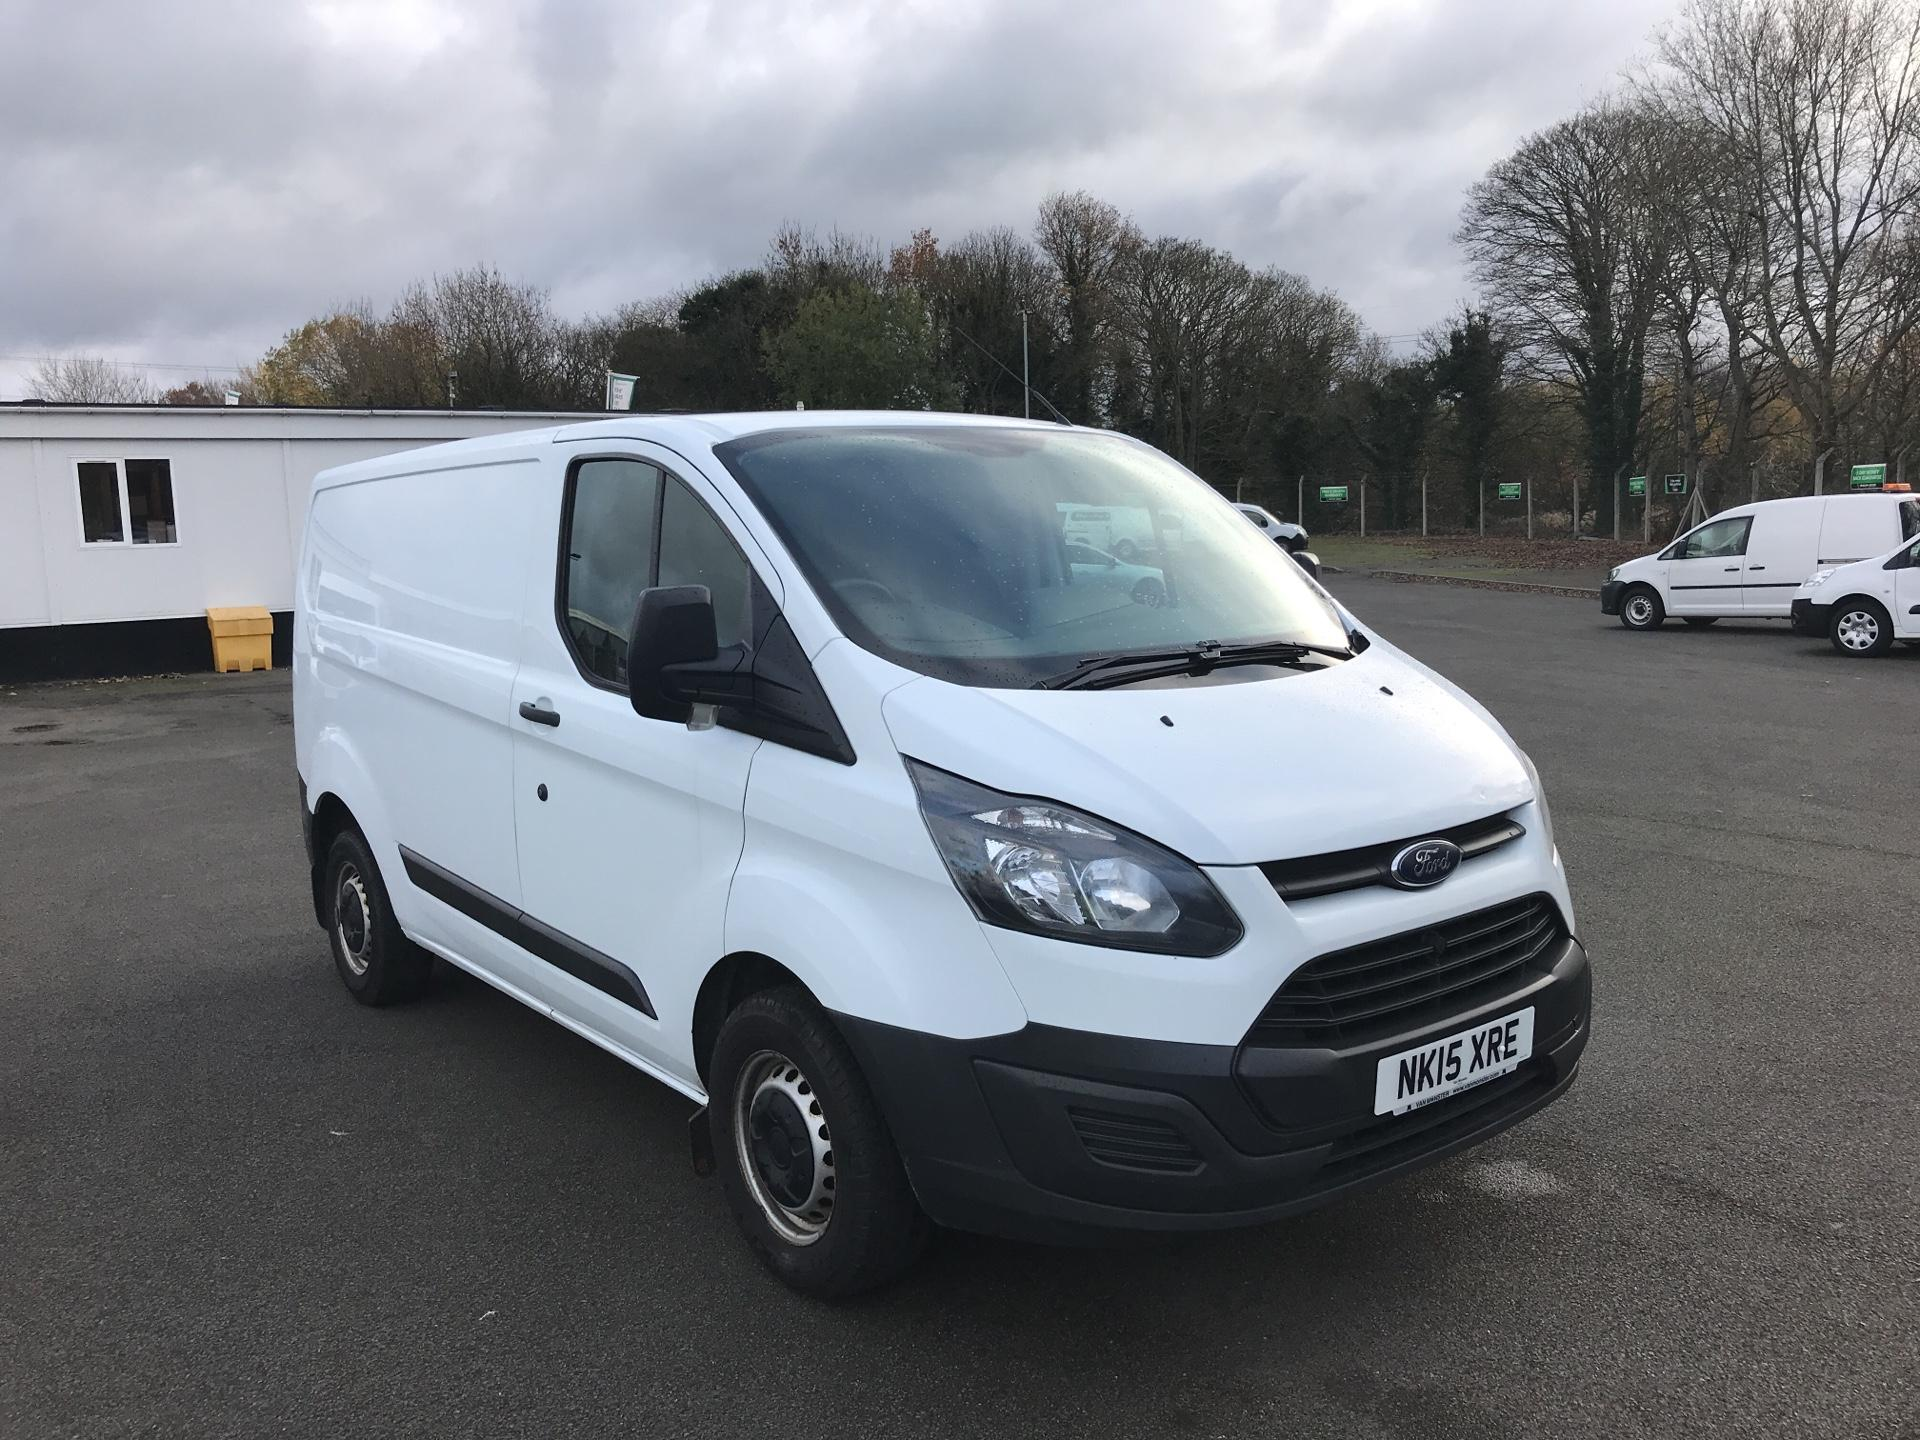 2015 Ford Transit Custom 290 L1 DIESEL FWD 2.2  TDCI 100PS LOW ROOF VAN EURO 5 *VALUE RANGE VEHICLE - CONDITION REFLECTED IN PRICE* (NK15XRE)